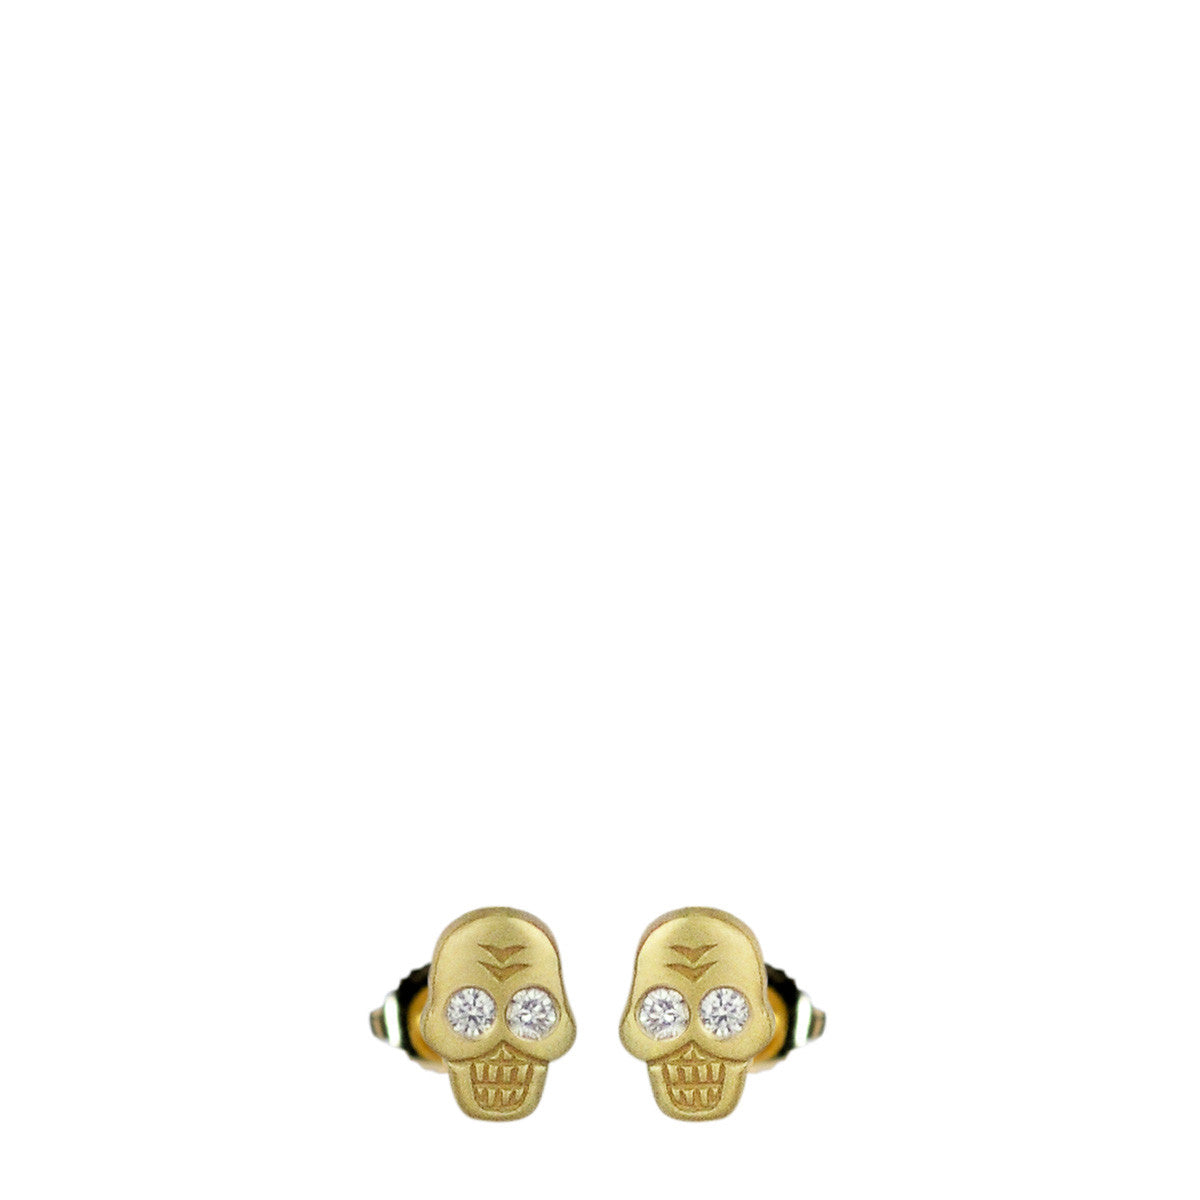 18K Gold Mini Skull Stud Earrings with Diamond Eyes